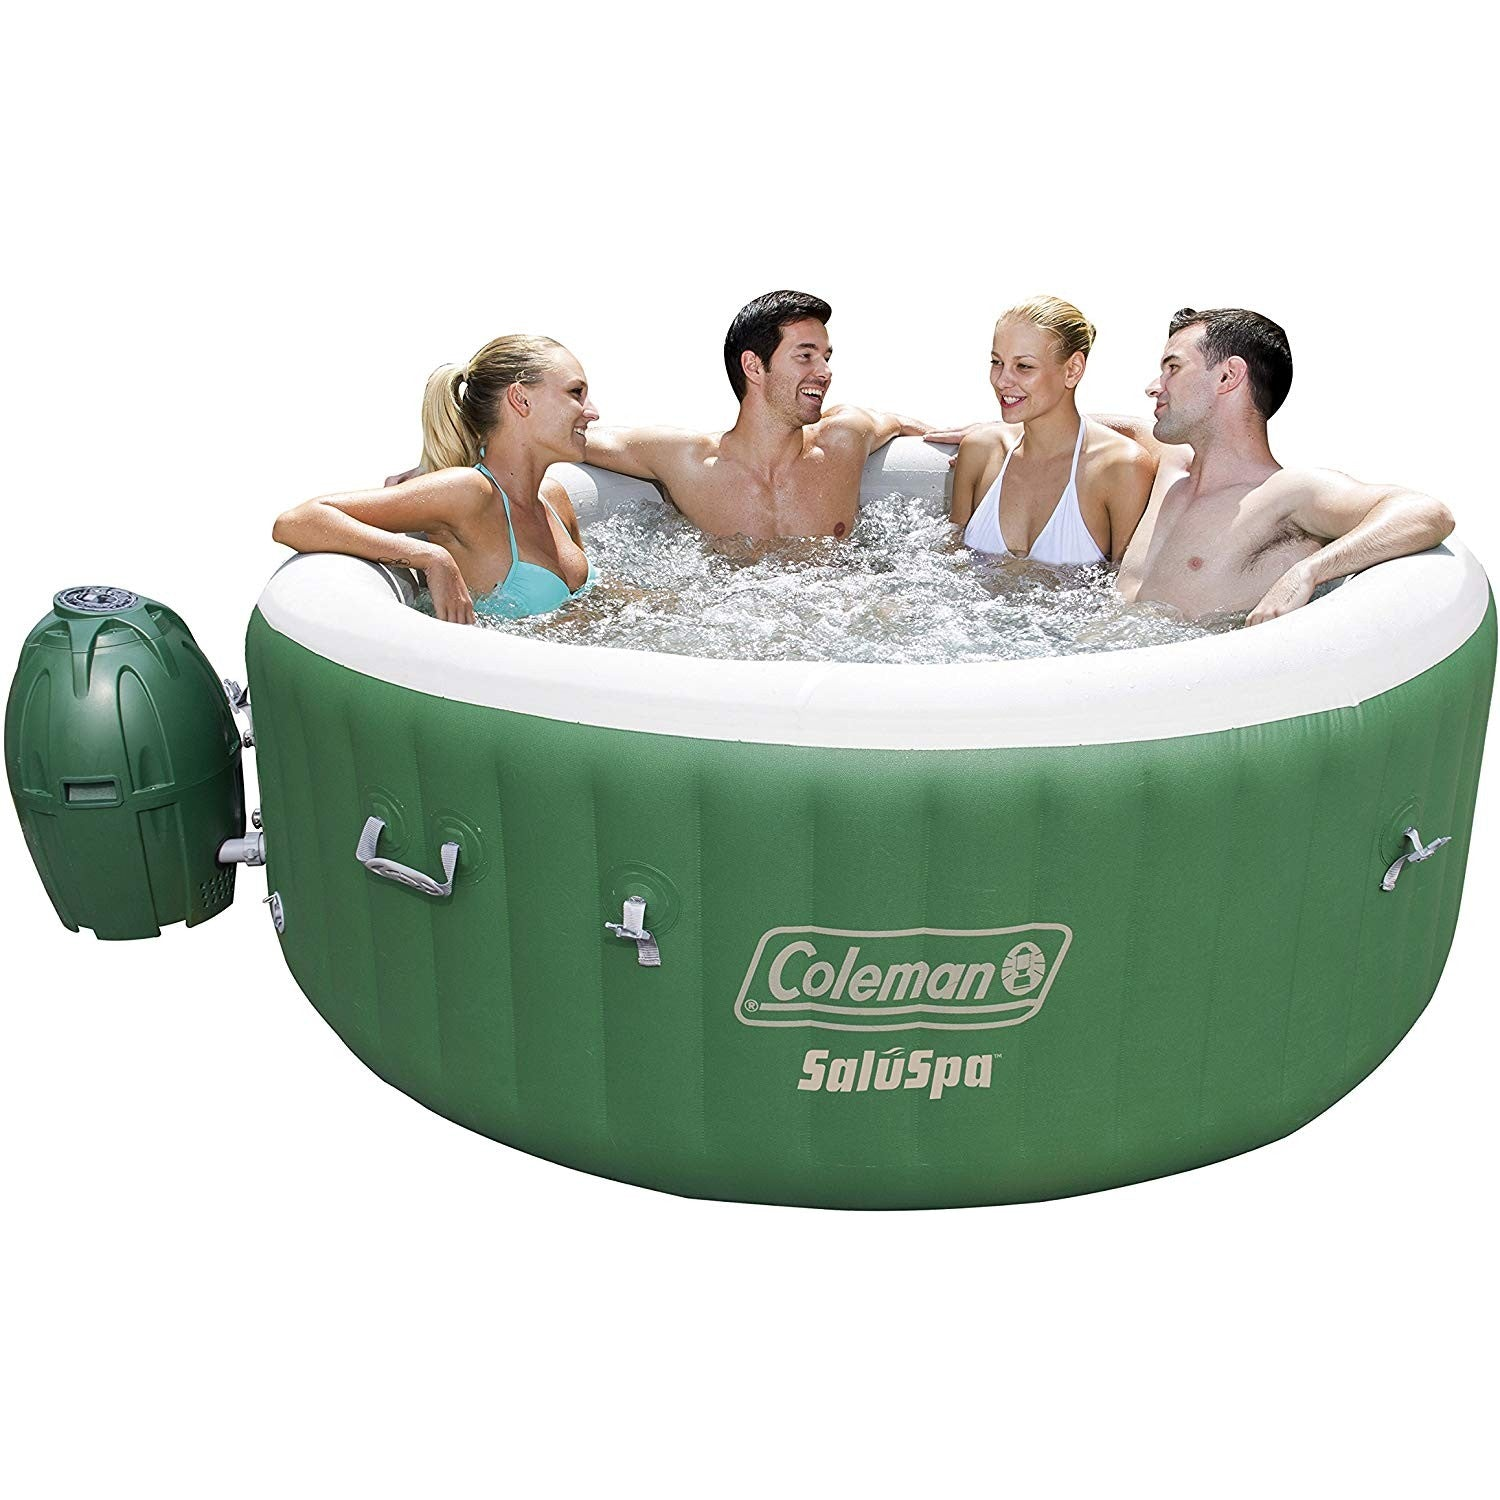 Inflatable Hot Tub - oddgifts.com